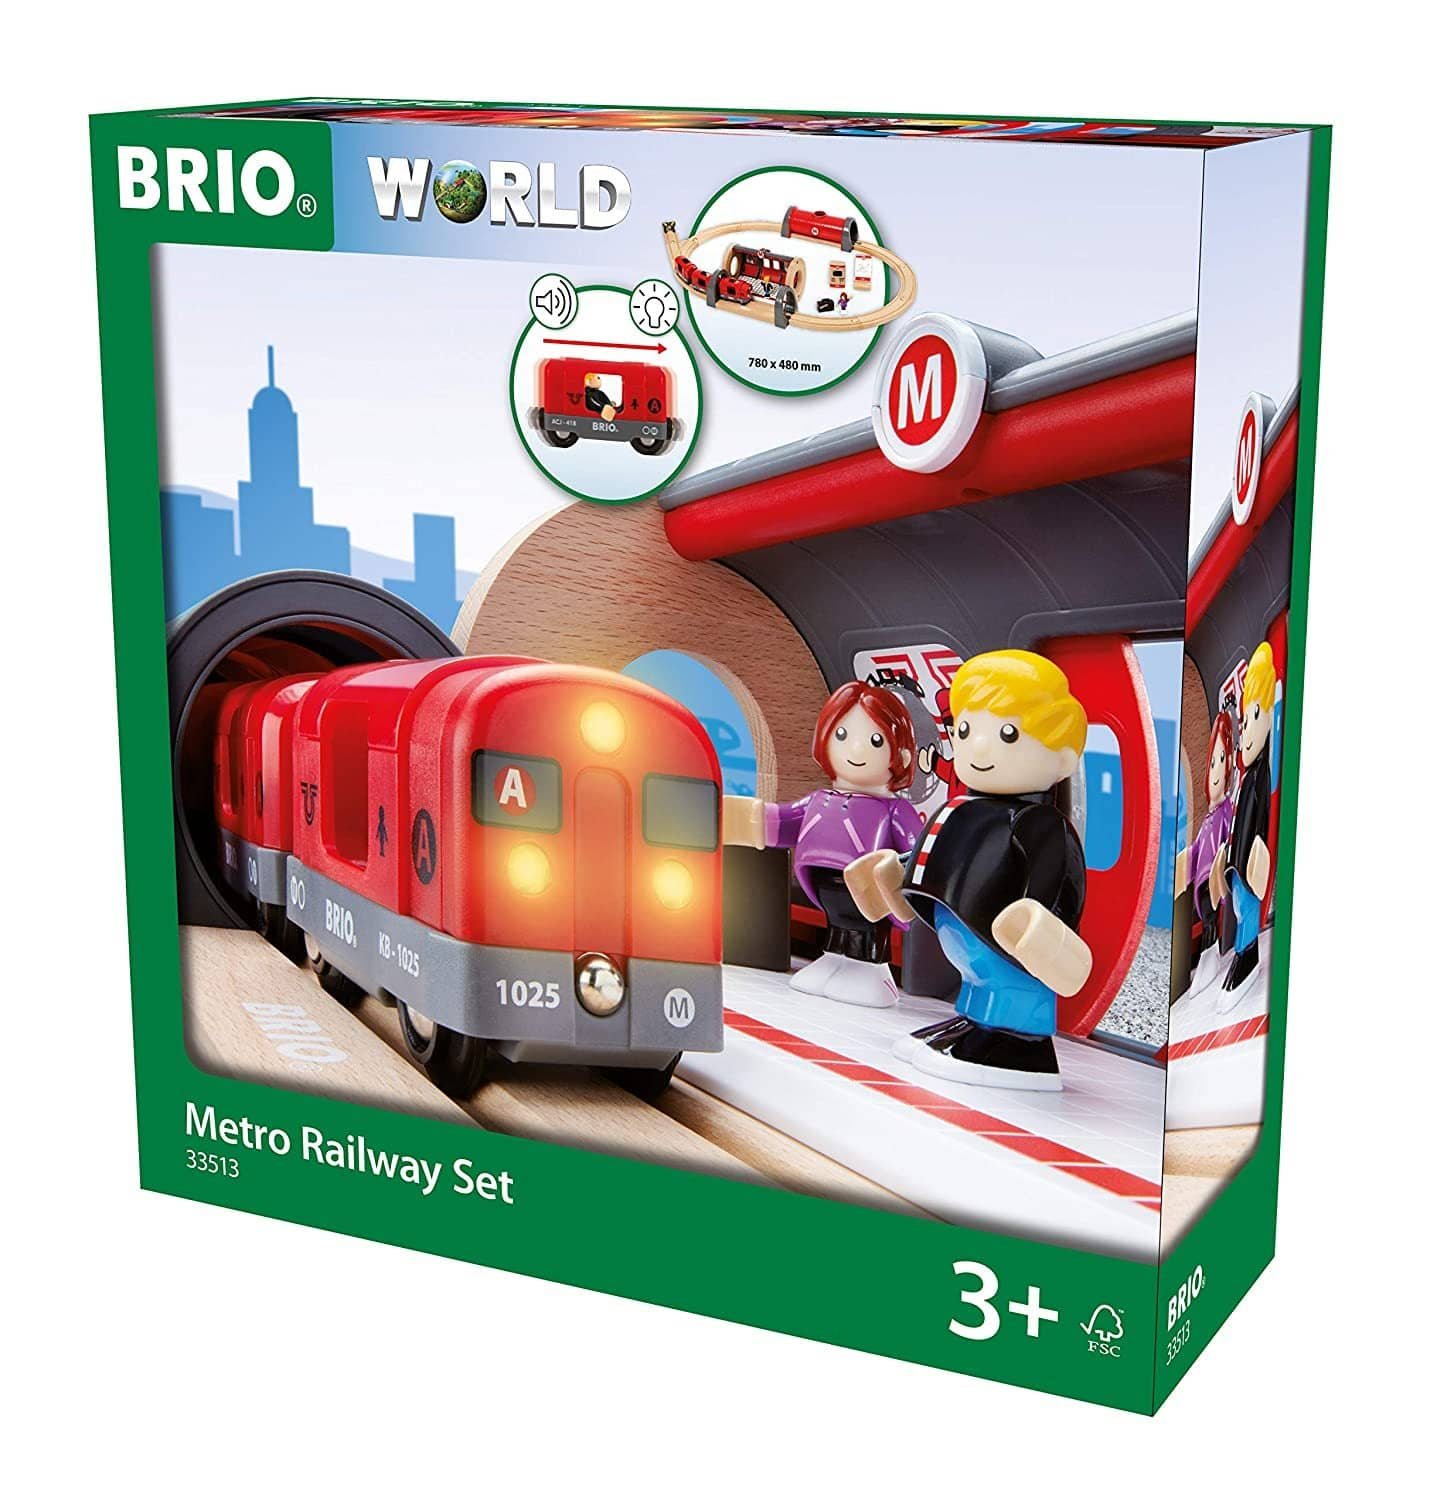 Brio 33513 Metro Railway Set | 20 Piece Train Toy With Accessories And Wooden Tracks For Kids Age 3 And Up-Kidding Around NYC